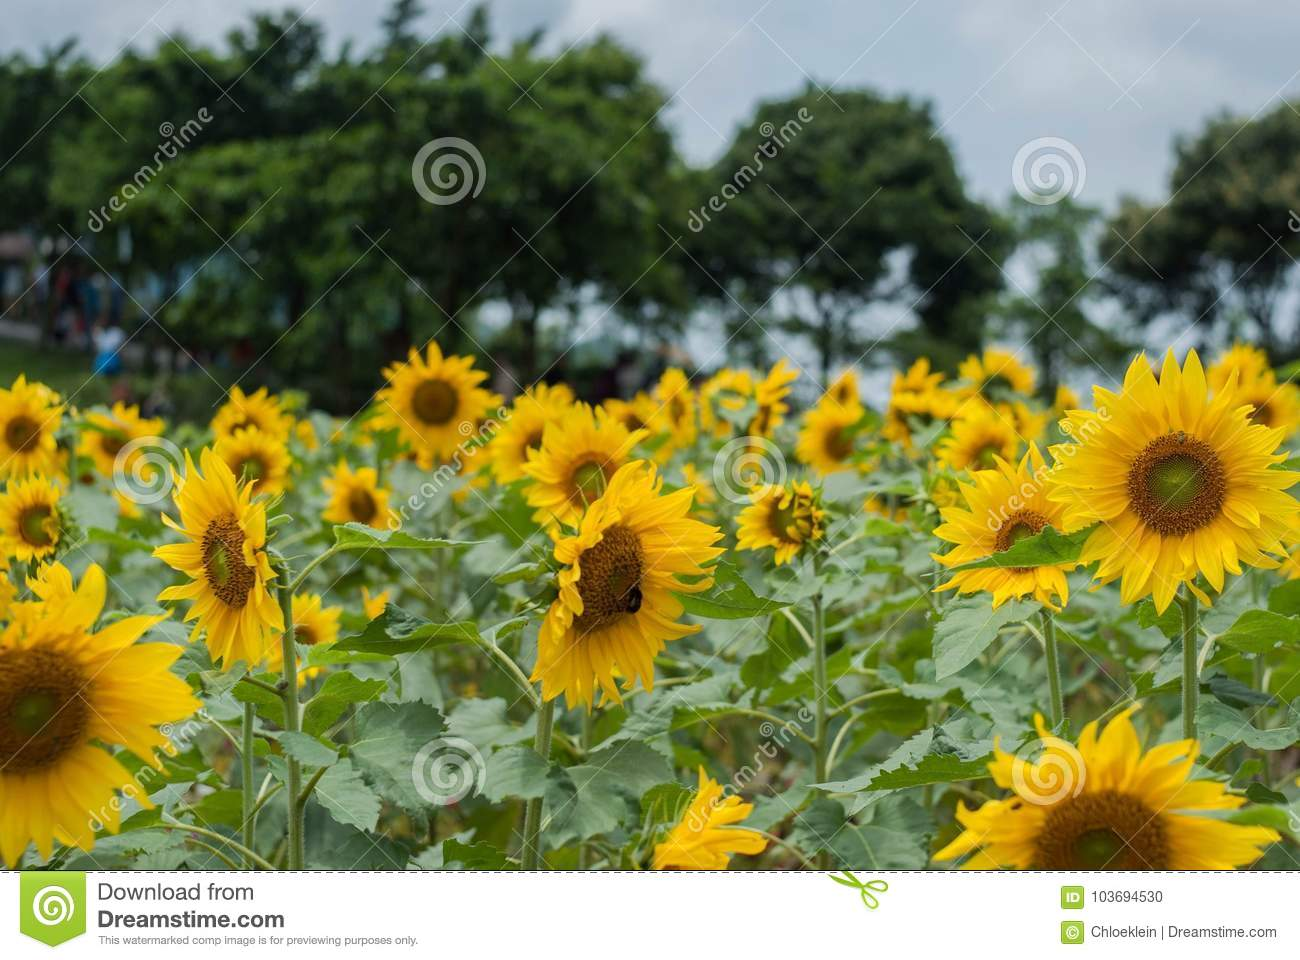 Sunflower in spring stock photo image of east landscapes 103694530 a sunflower is a very tall plant with large yellow flowers oil from sunflower seeds is used in cooking and to make margarine mightylinksfo